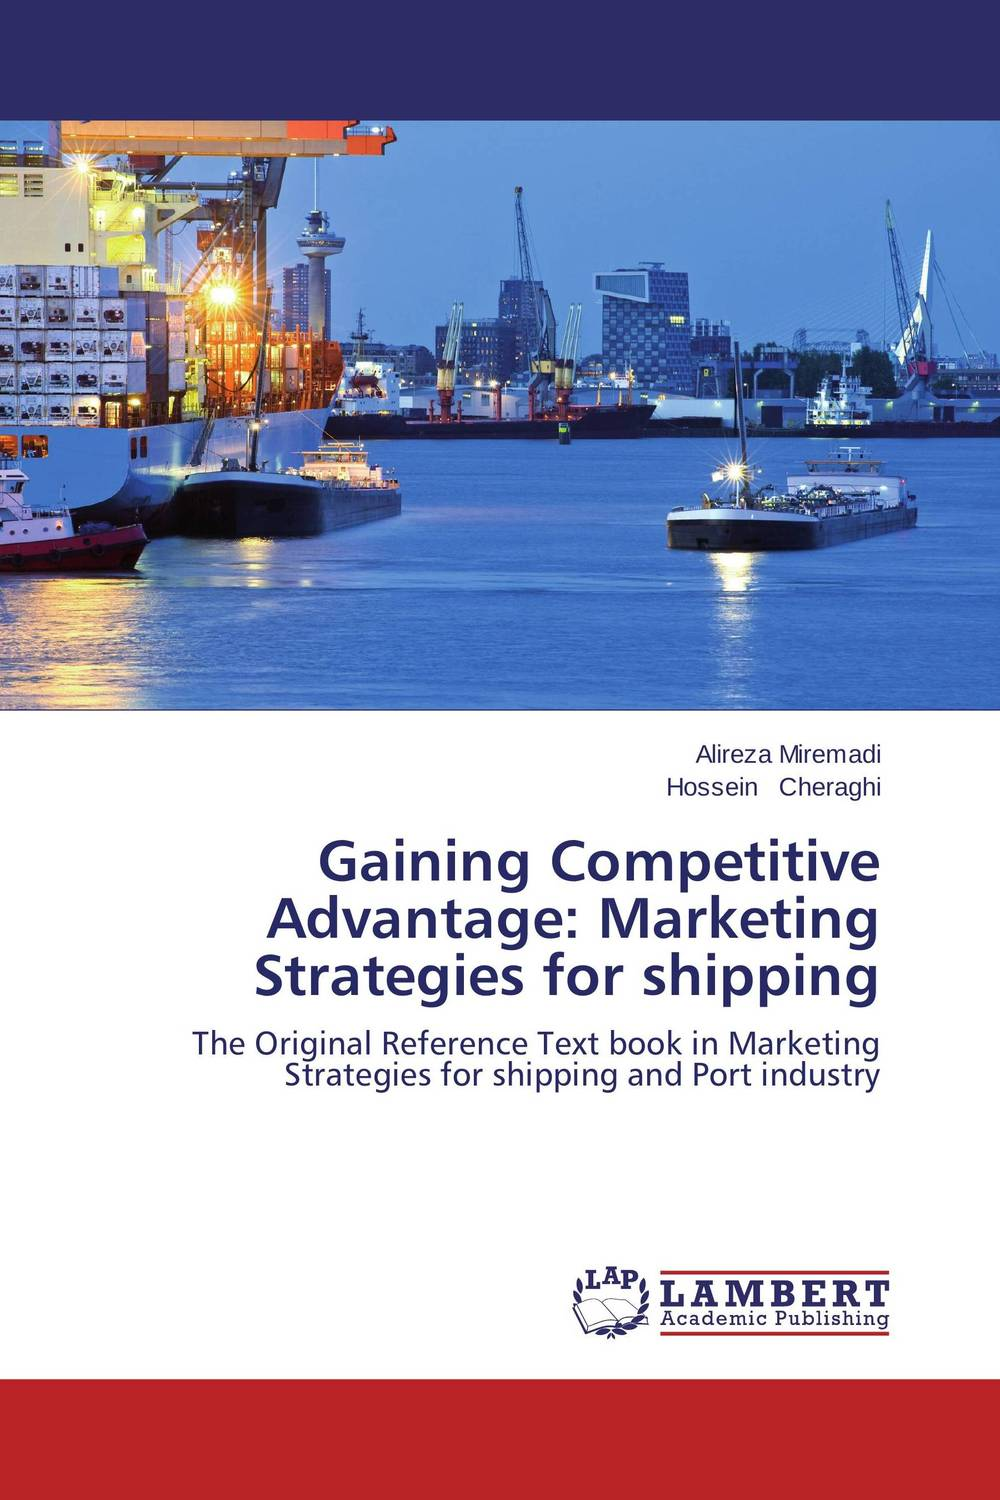 Gaining Competitive Advantage: Marketing Strategies for shipping